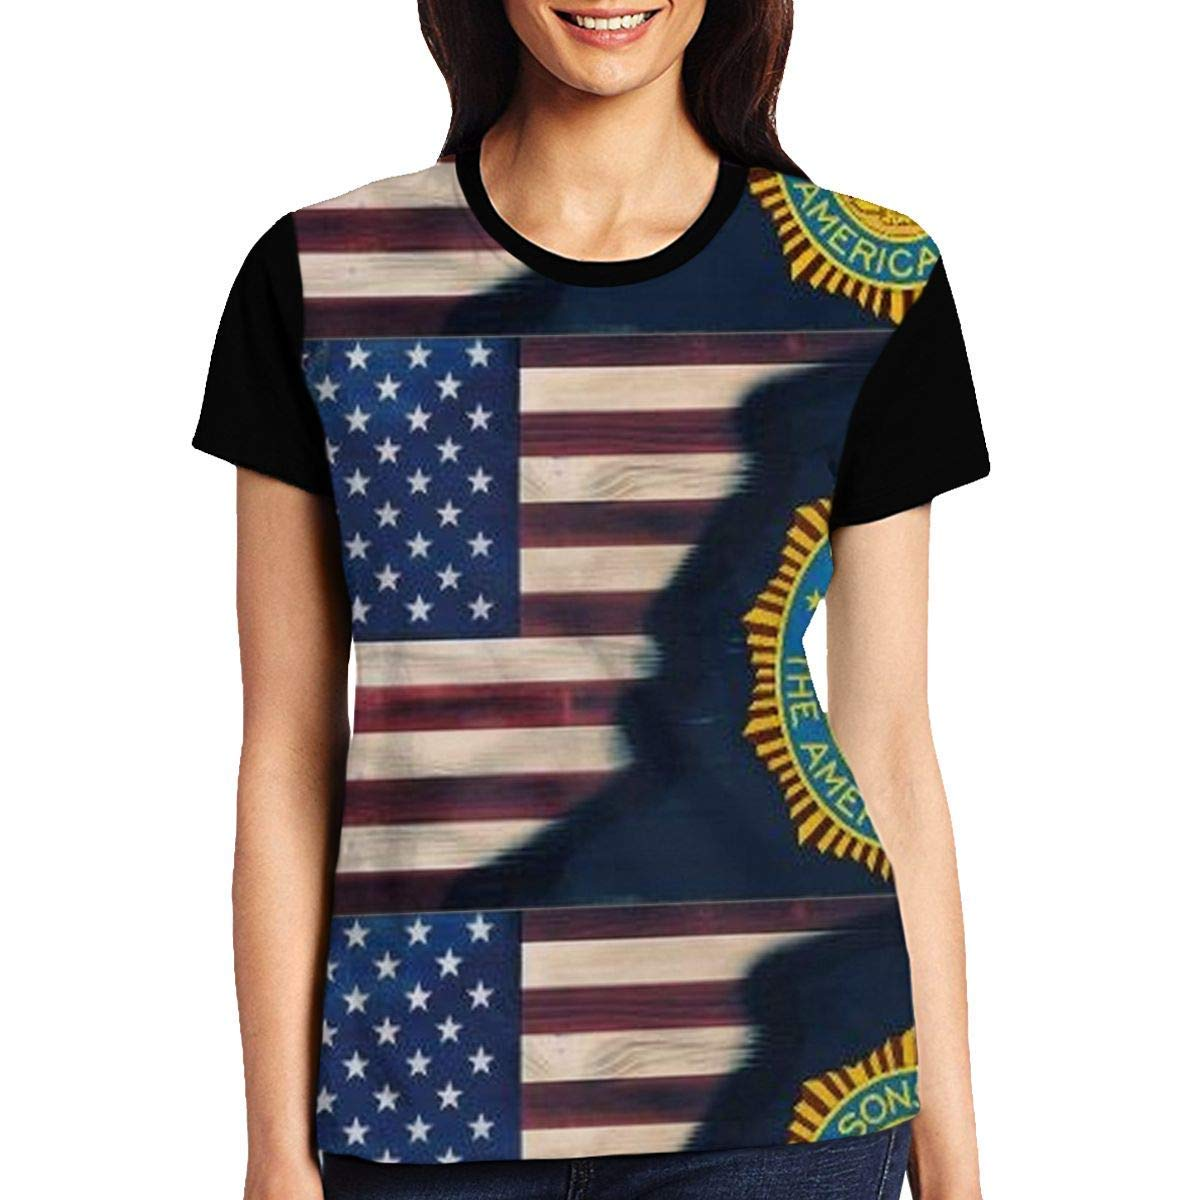 Womens American Legion Hedging Short-Sleeve Crewneck T-Shirt Print Tees Shirt Short Sleeve T Shirt Blouse Tops